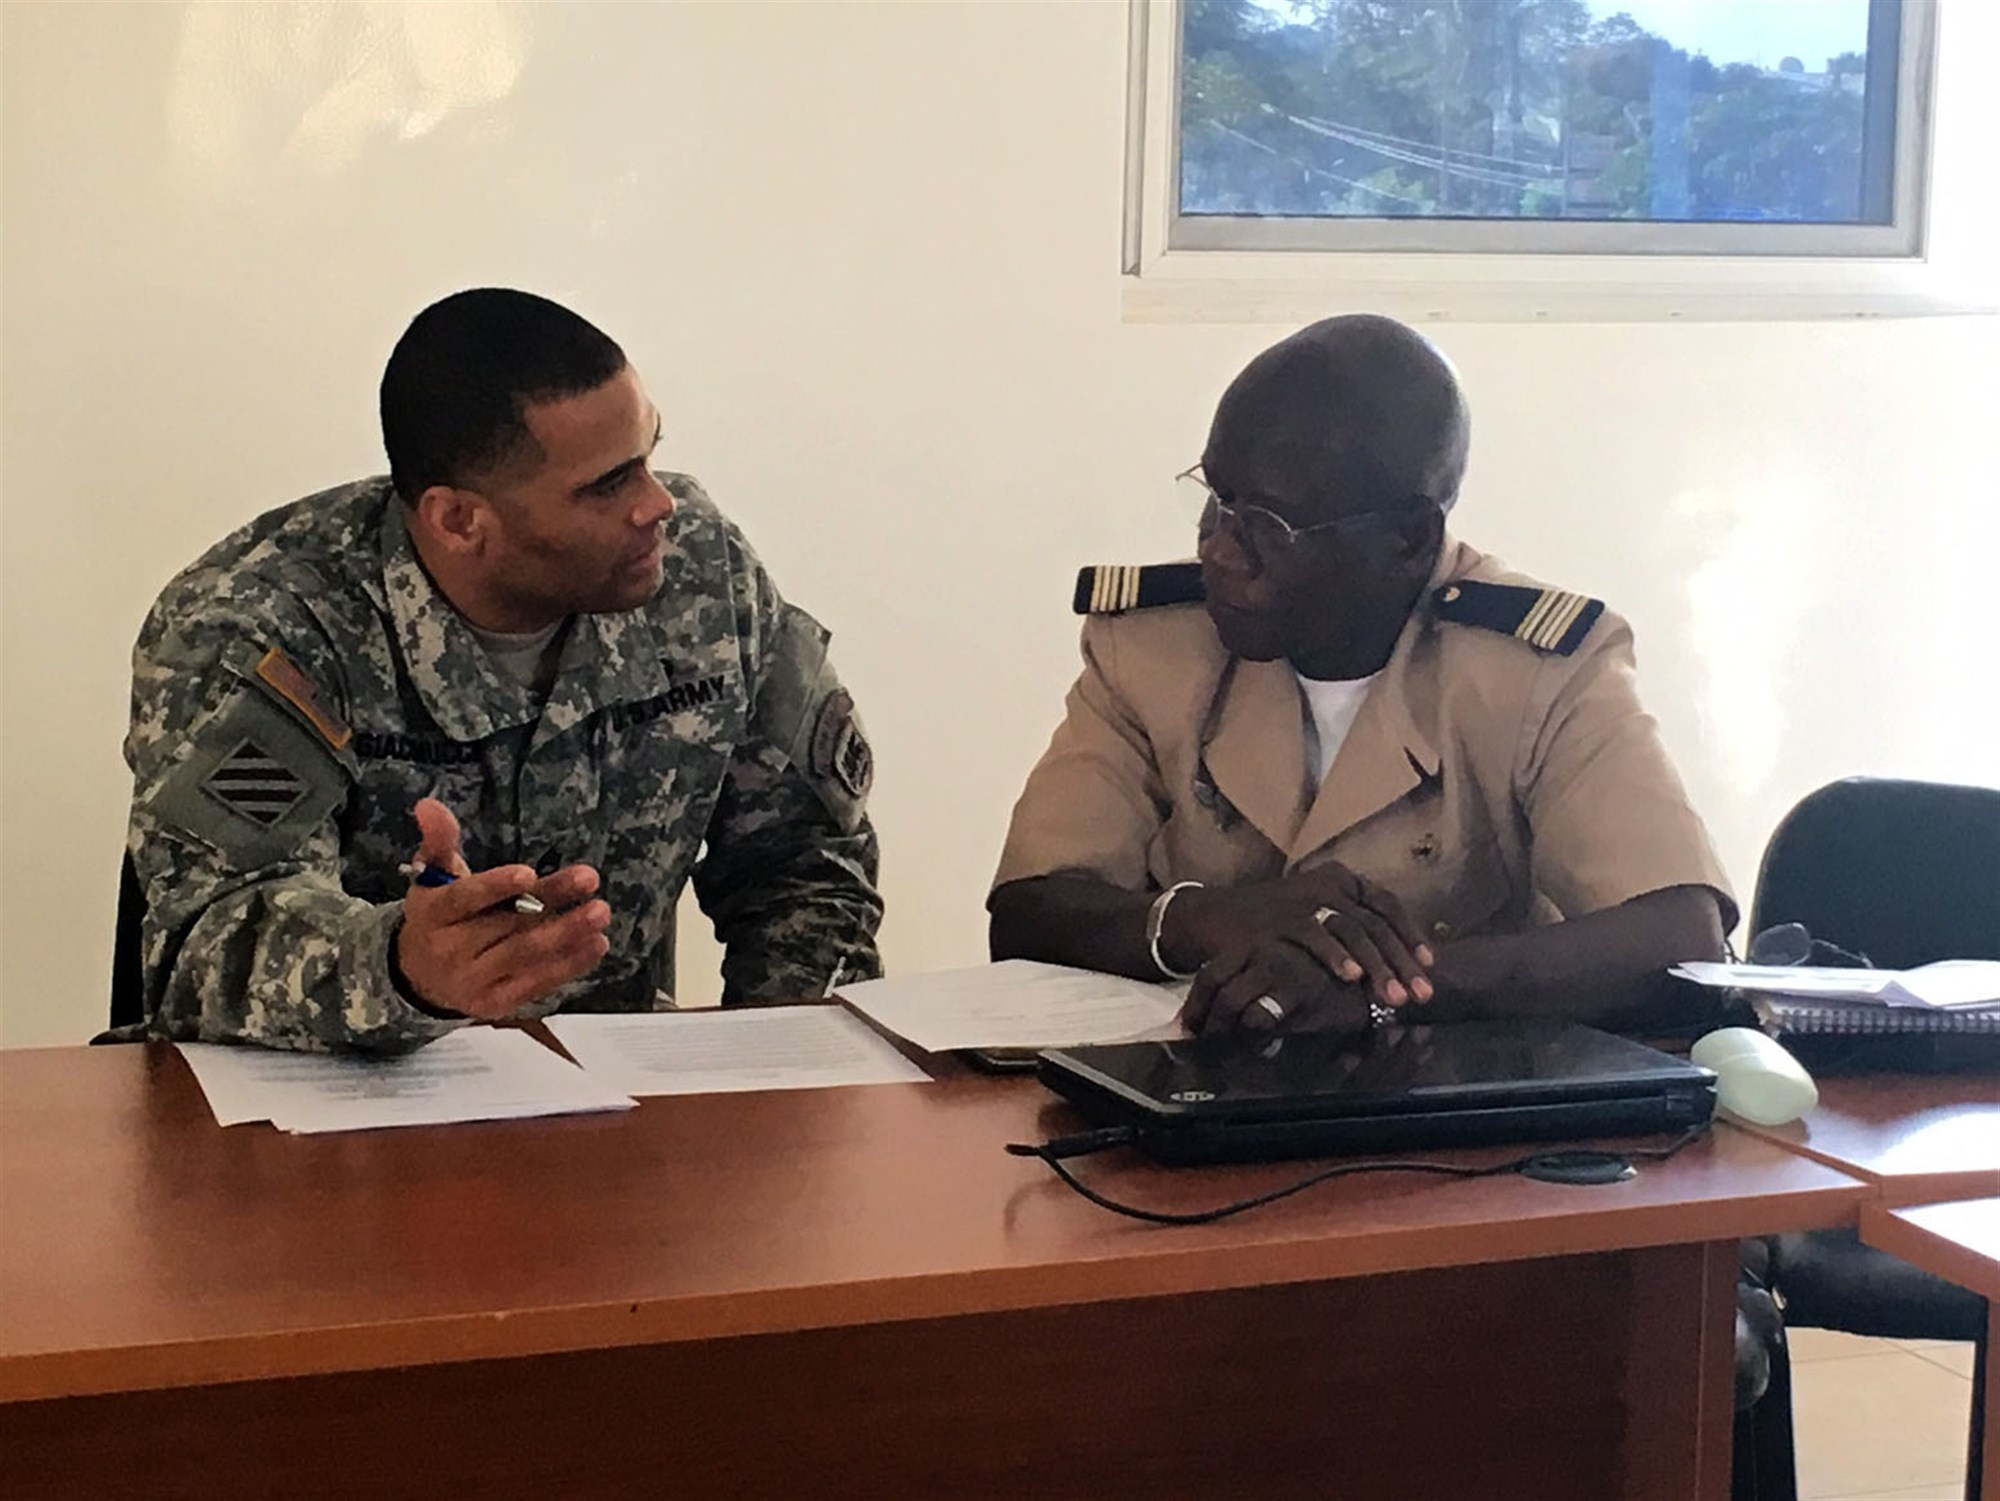 Sgt. First Class Jason Giacomucci, logistics planner for U.S. Army Africa, and Lt. Col. Mamadou Laminet Kouate, logistics officer for the Senegalese Army, discuss plans to support the African Readiness Training 2016 exercise during the initial planning event in Dakar, Senegal, Jan. 12-14. (U.S. Army Africa photo by Capt. Anielka DiFelice)